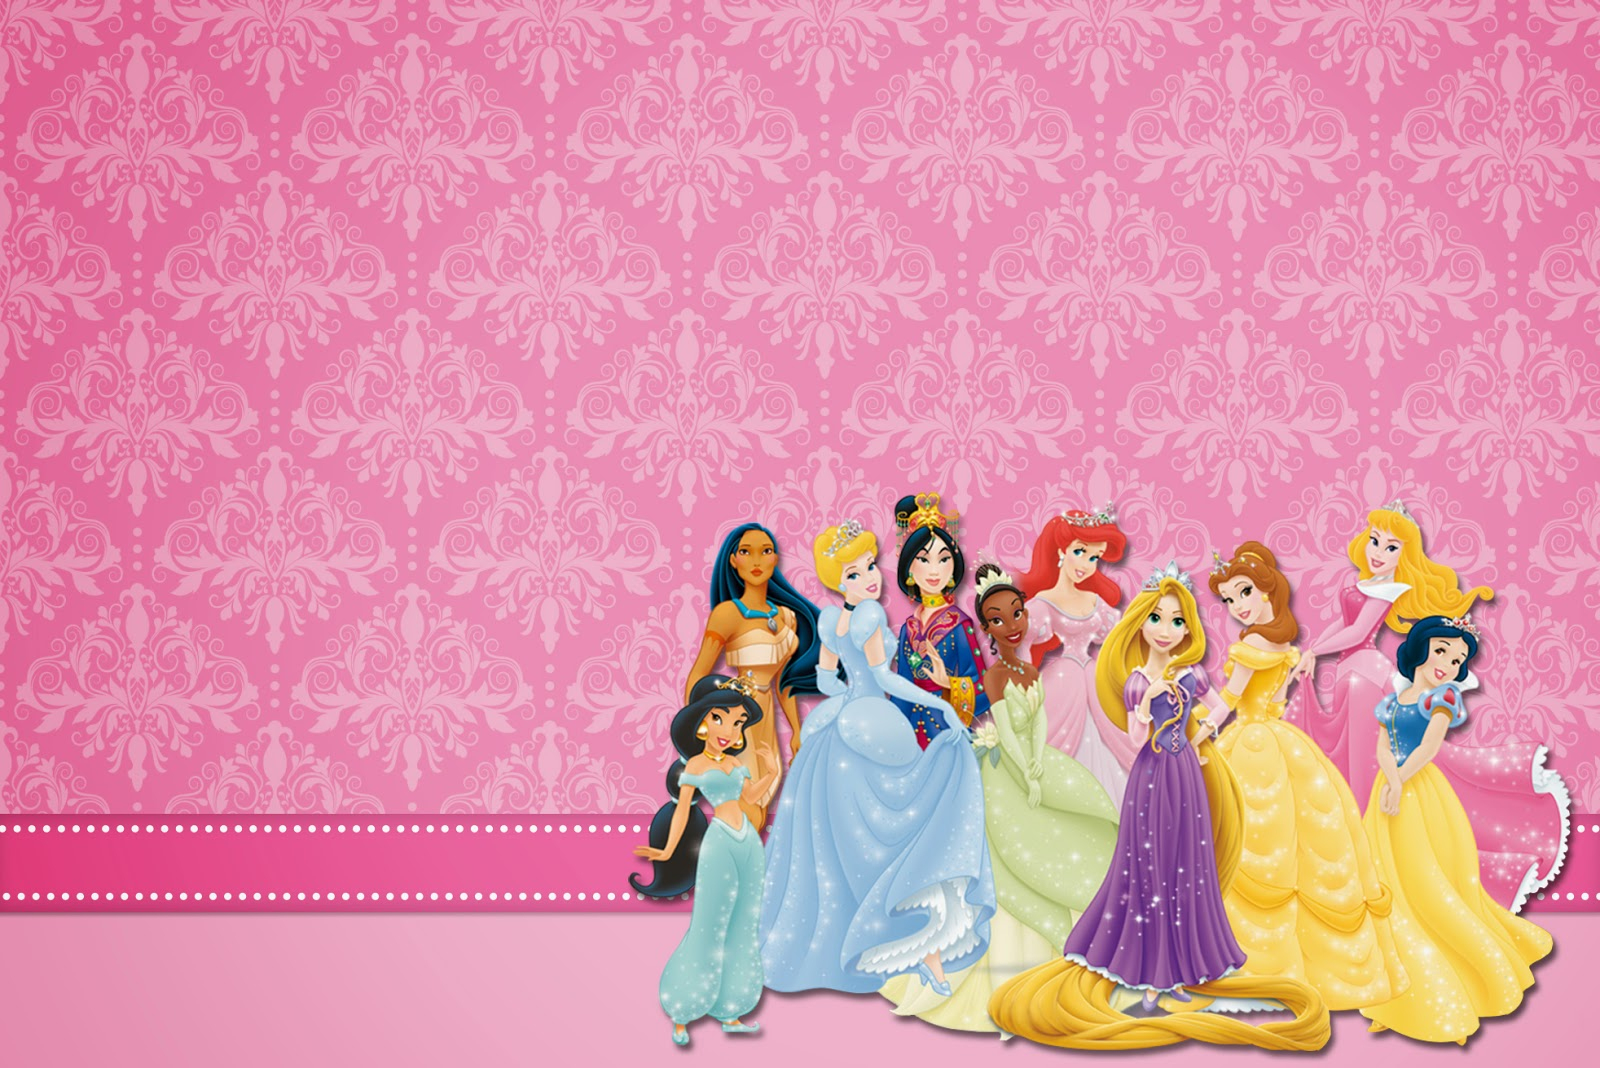 Disney Princess Party: Free Printable Party Invitations. | Oh My - Free Princess Printable Invitations